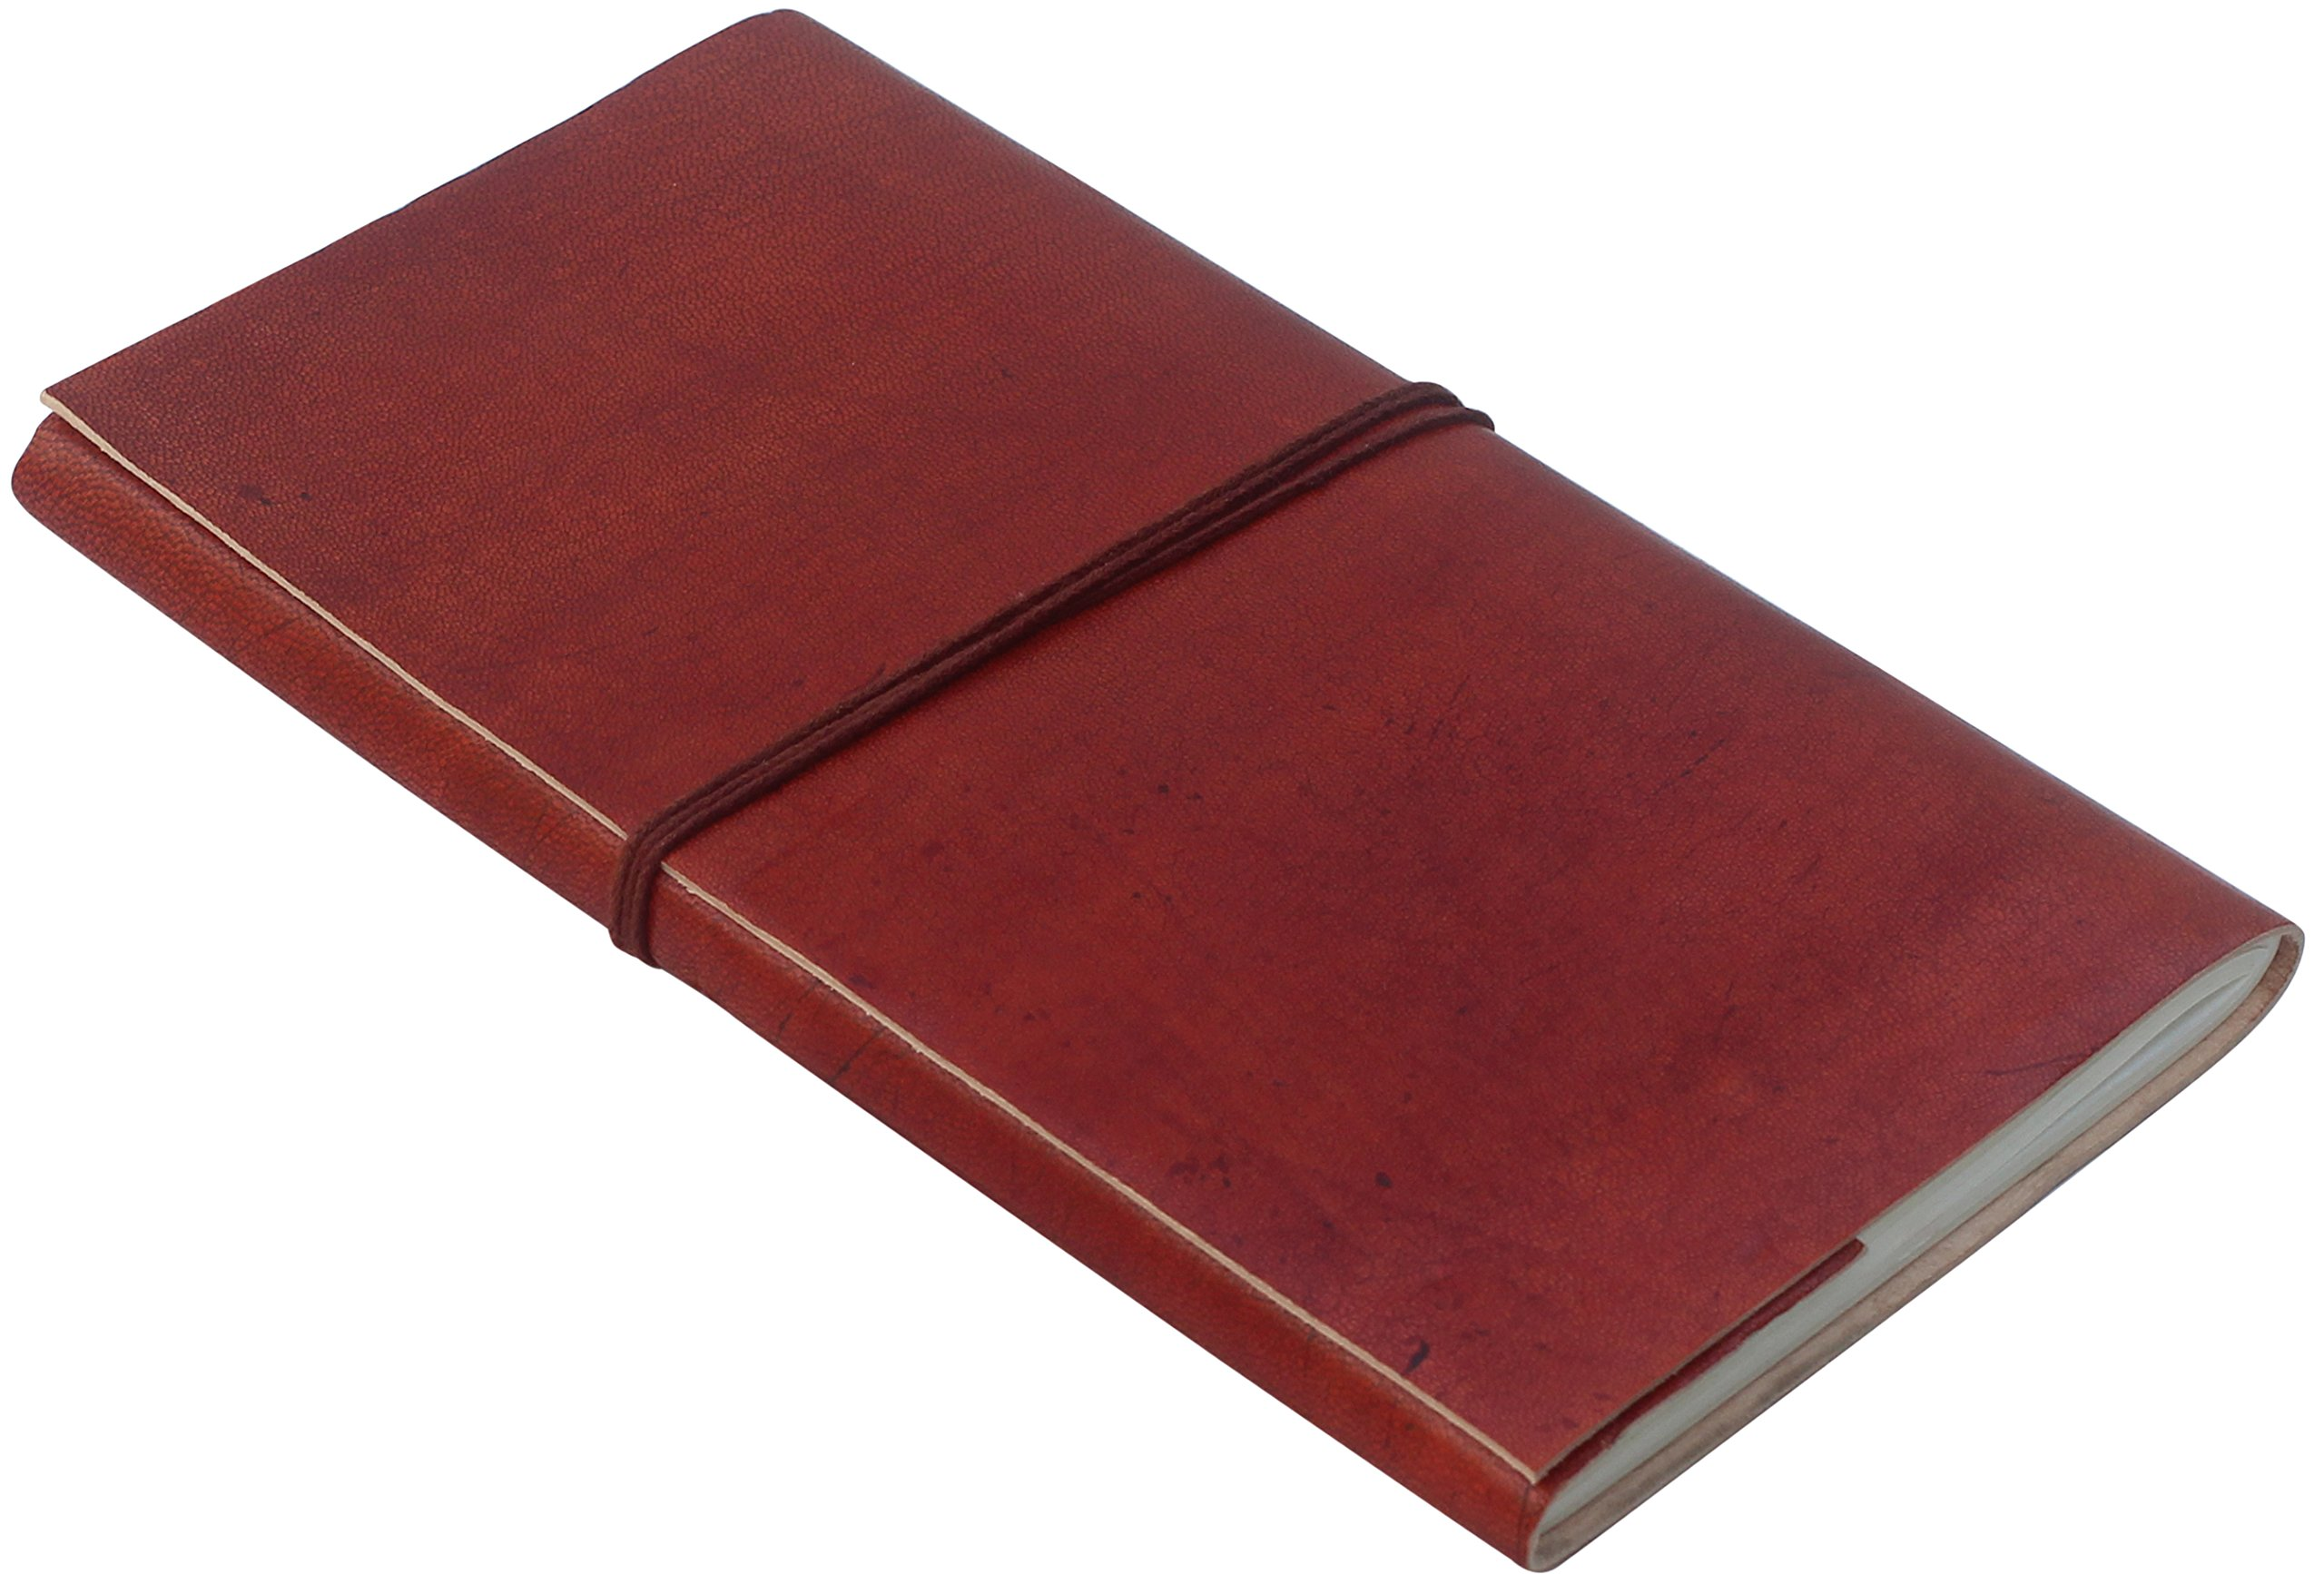 """Leather Journal Writing Notebook - 9"""" x 5"""" Beautiful Handmade Brown Color Leather Writing Journal with Cotton Thread Strap - Unlined Paper - 48 Sheets 96 Pages - Perfect Travel Journal to Write in"""